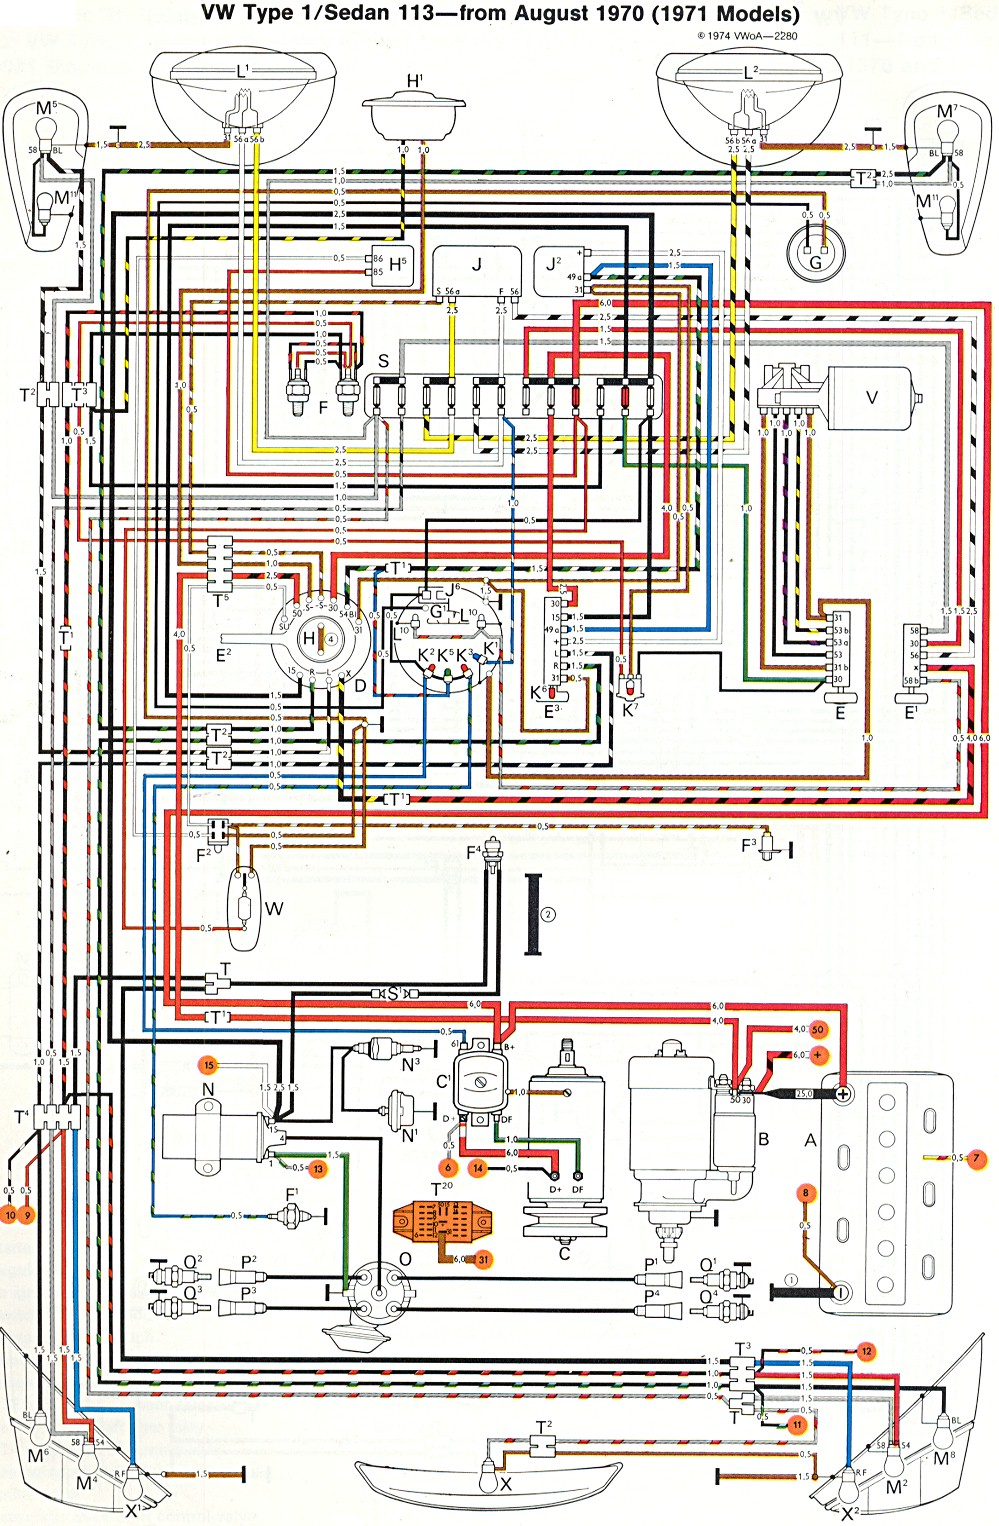 bug_super_71 1971 super beetle wiring diagram thegoldenbug com 1971 vw beetle wiring diagram at aneh.co